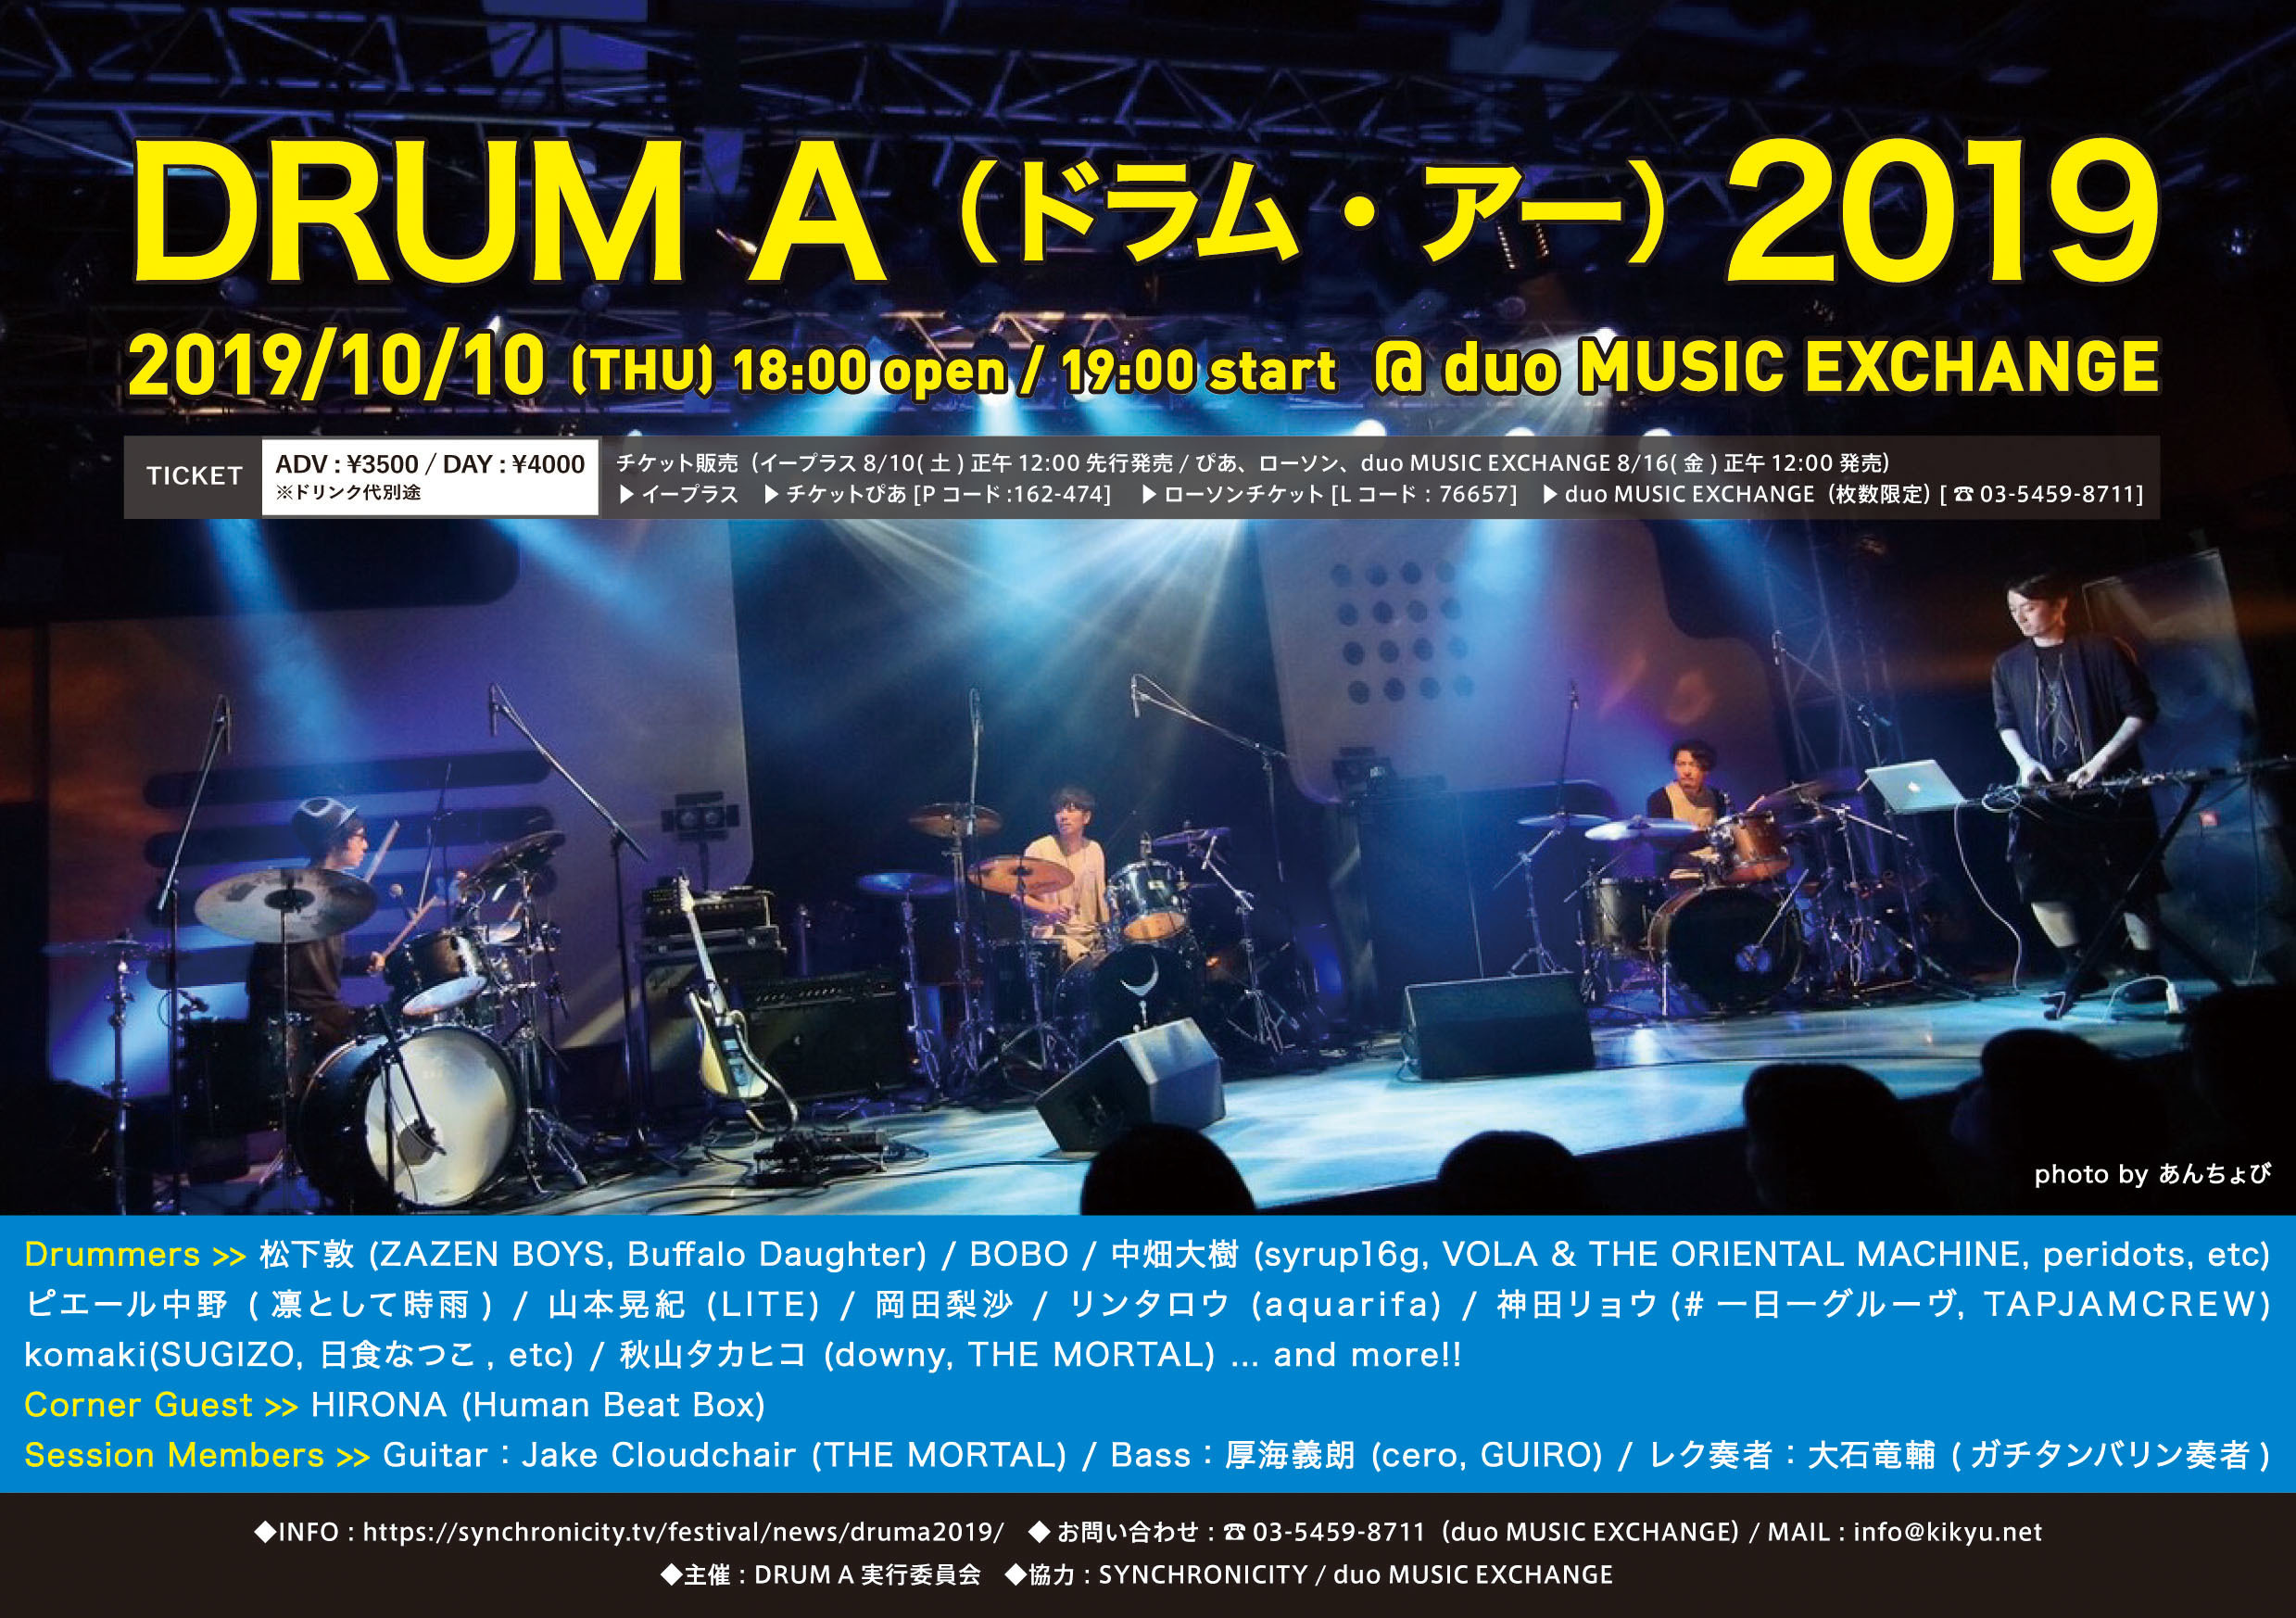 『DRUM A(ドラム・アー) 2019』